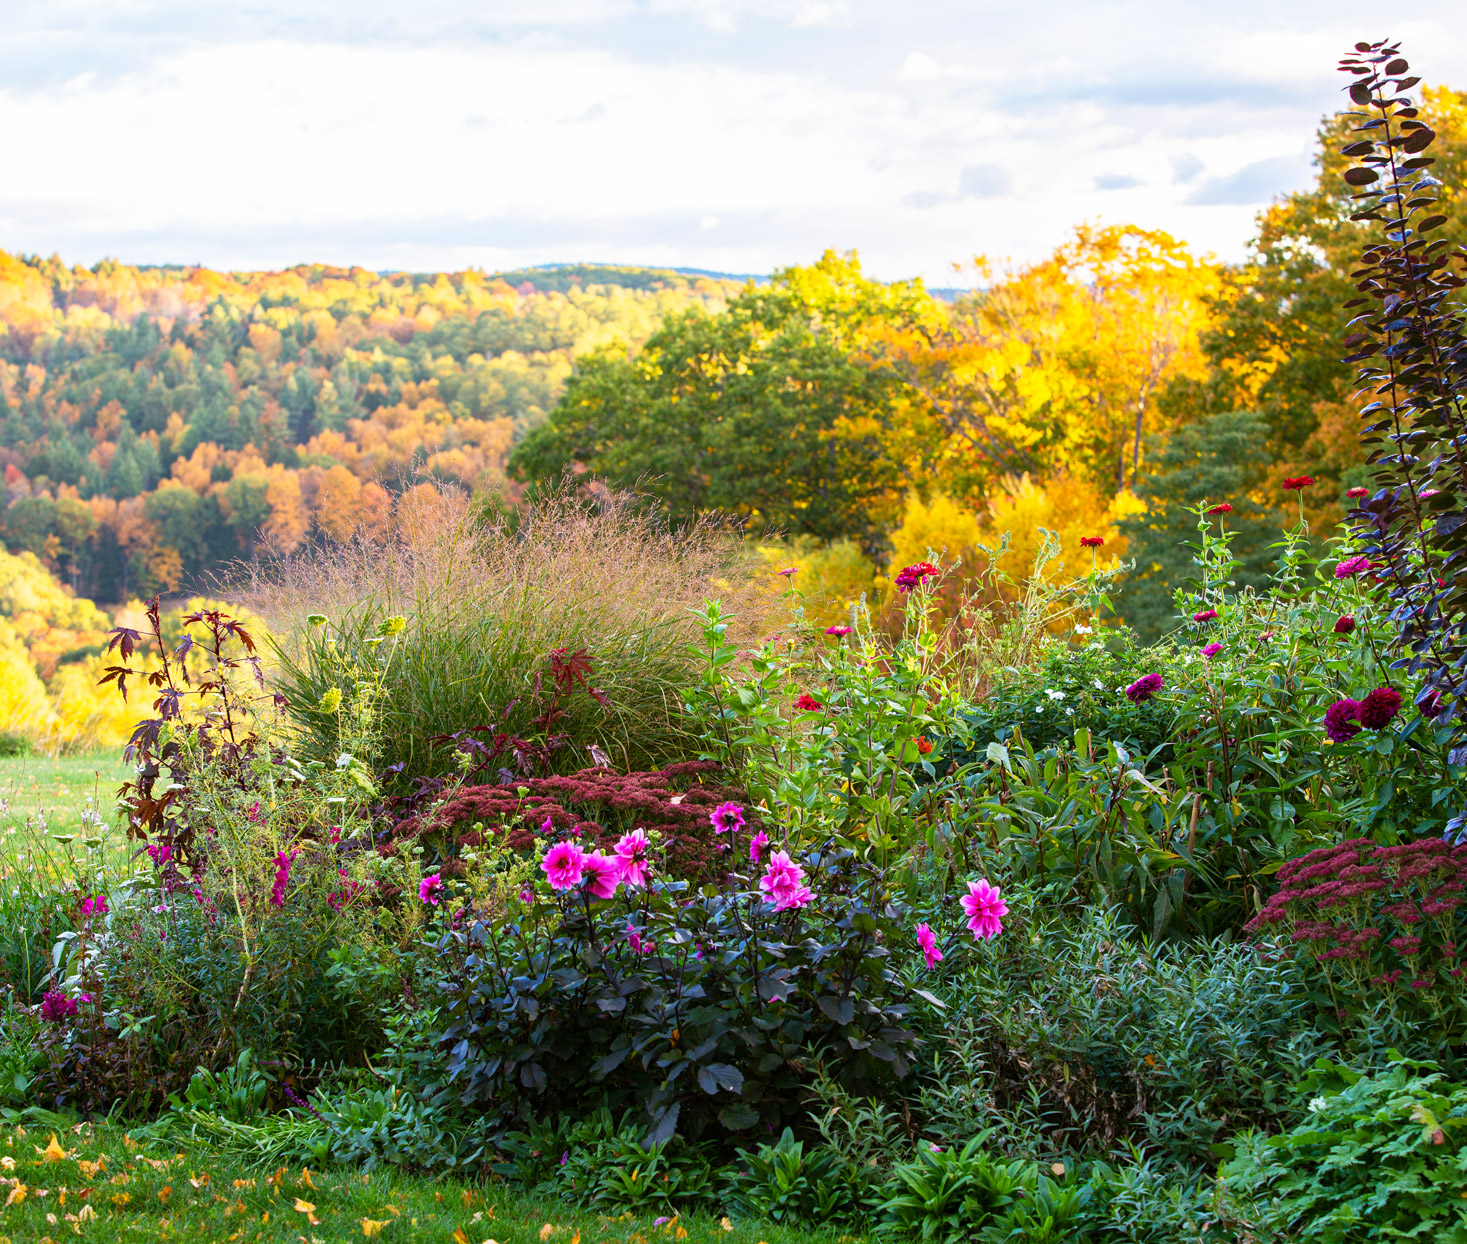 mix of foliage and flowers by gardener Siena McFarland on O'Donnell Vermont property